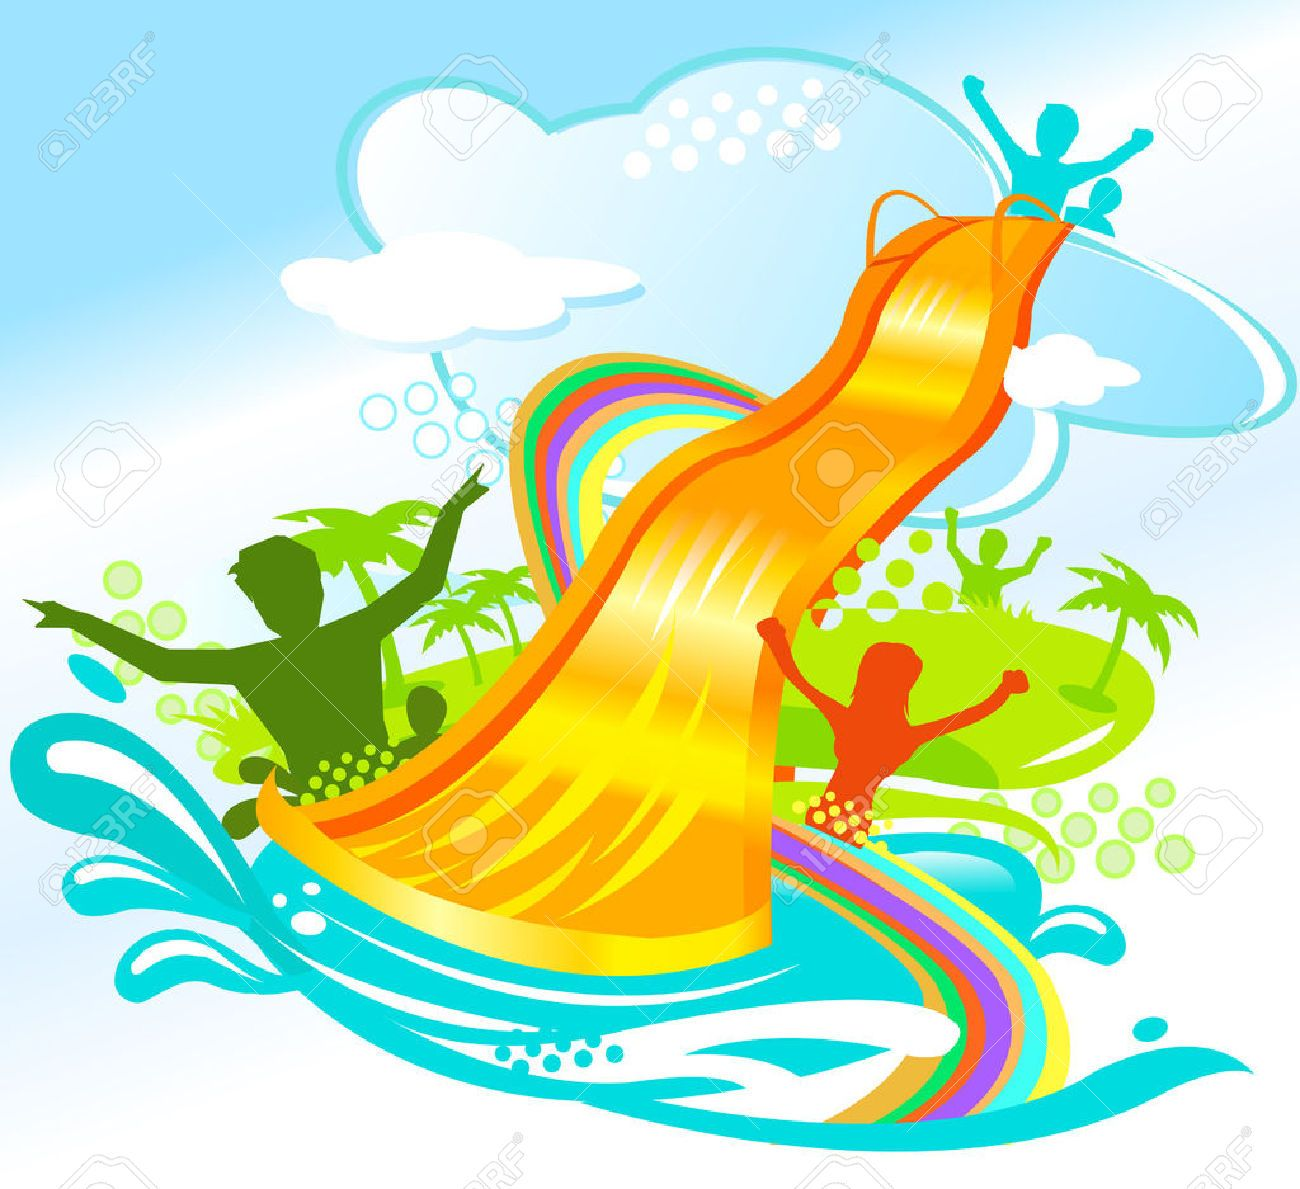 Free clipart of water slides 6 » Clipart Portal.